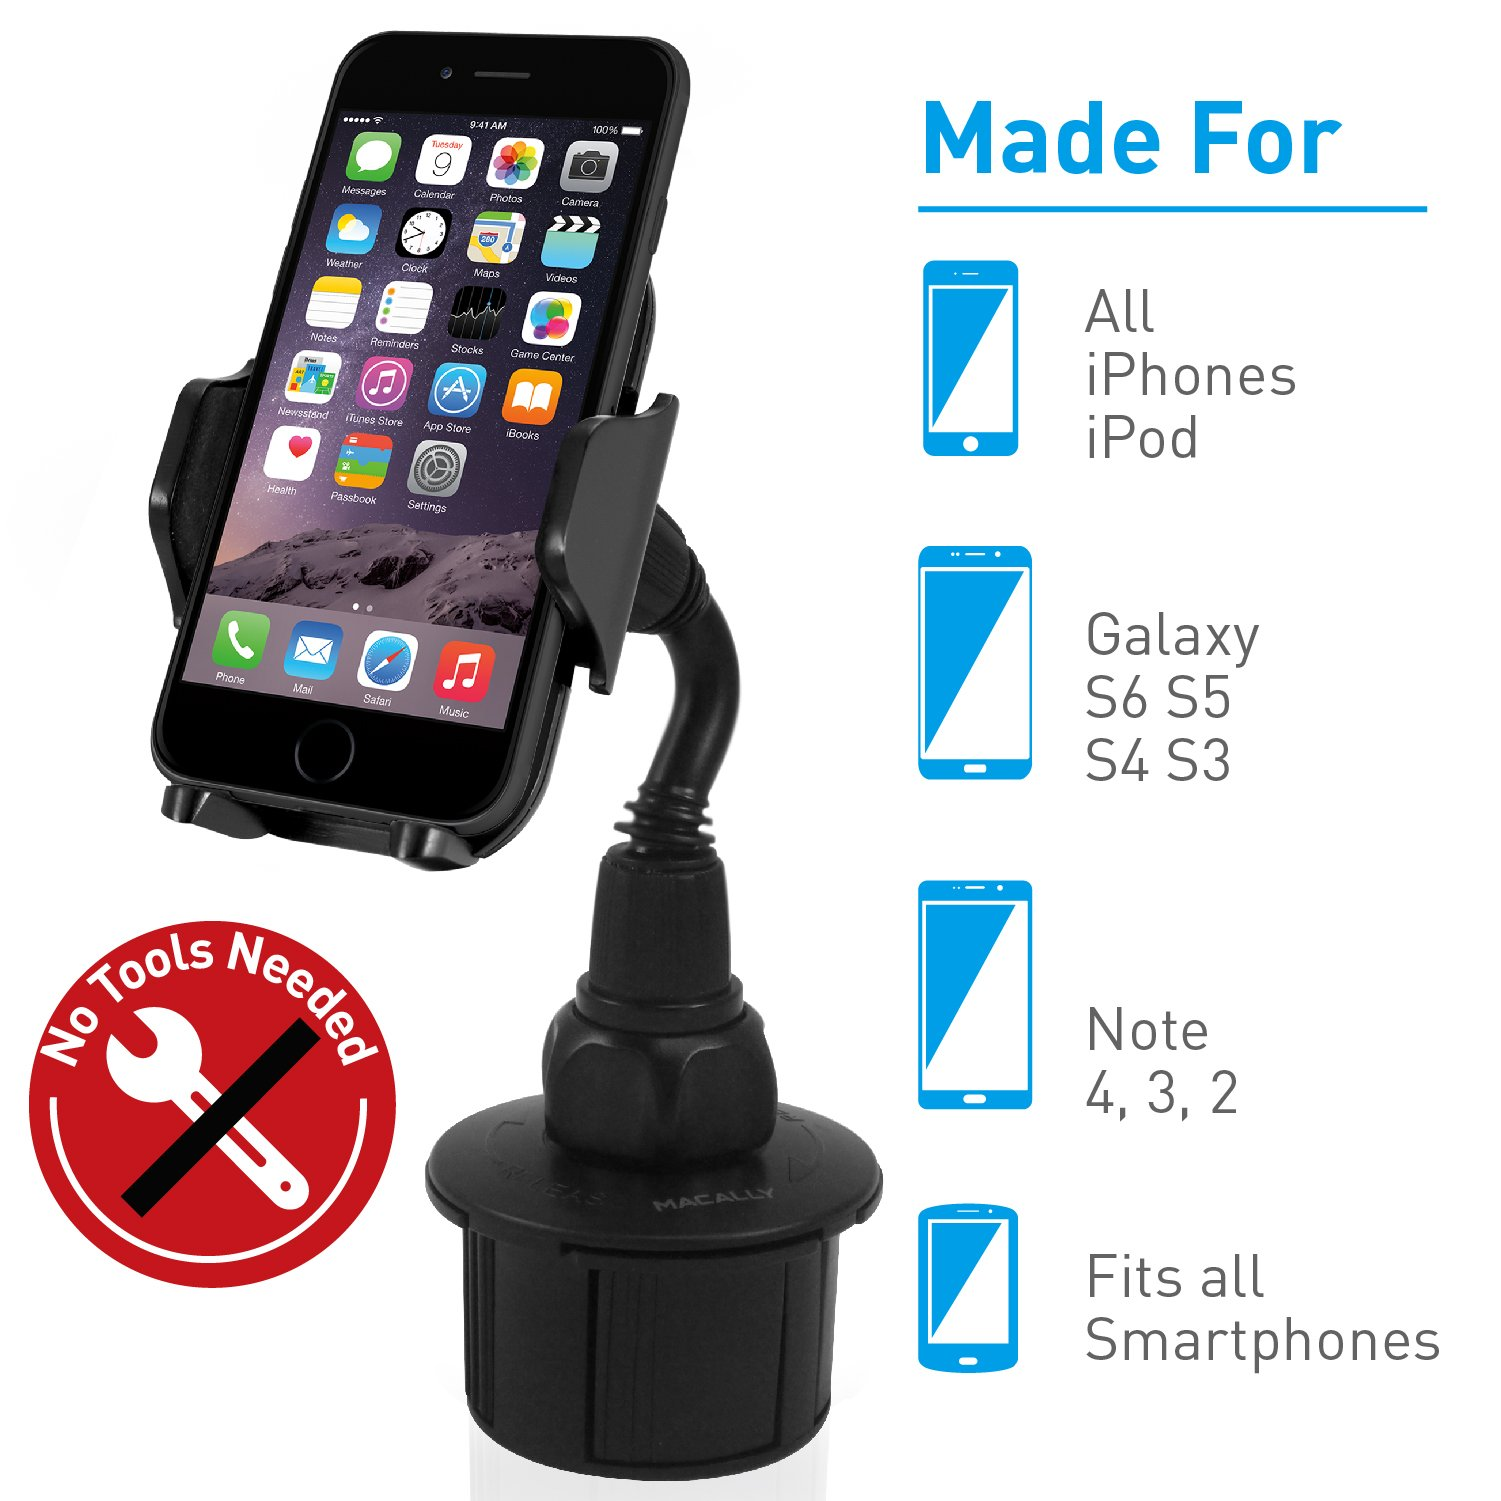 Macally Adjustable Automobile Cup Holder Phone Mount for iPhone Xs XS Max XR X 8 8+ 7 7 Plus 6s Plus 6s SE Samsung Galaxy S10 S10E S9 S9+ S8 S7 Edge S6 Note 5, Xperia, iPod, Smartphone, GPS (MCUPMP) by Macally